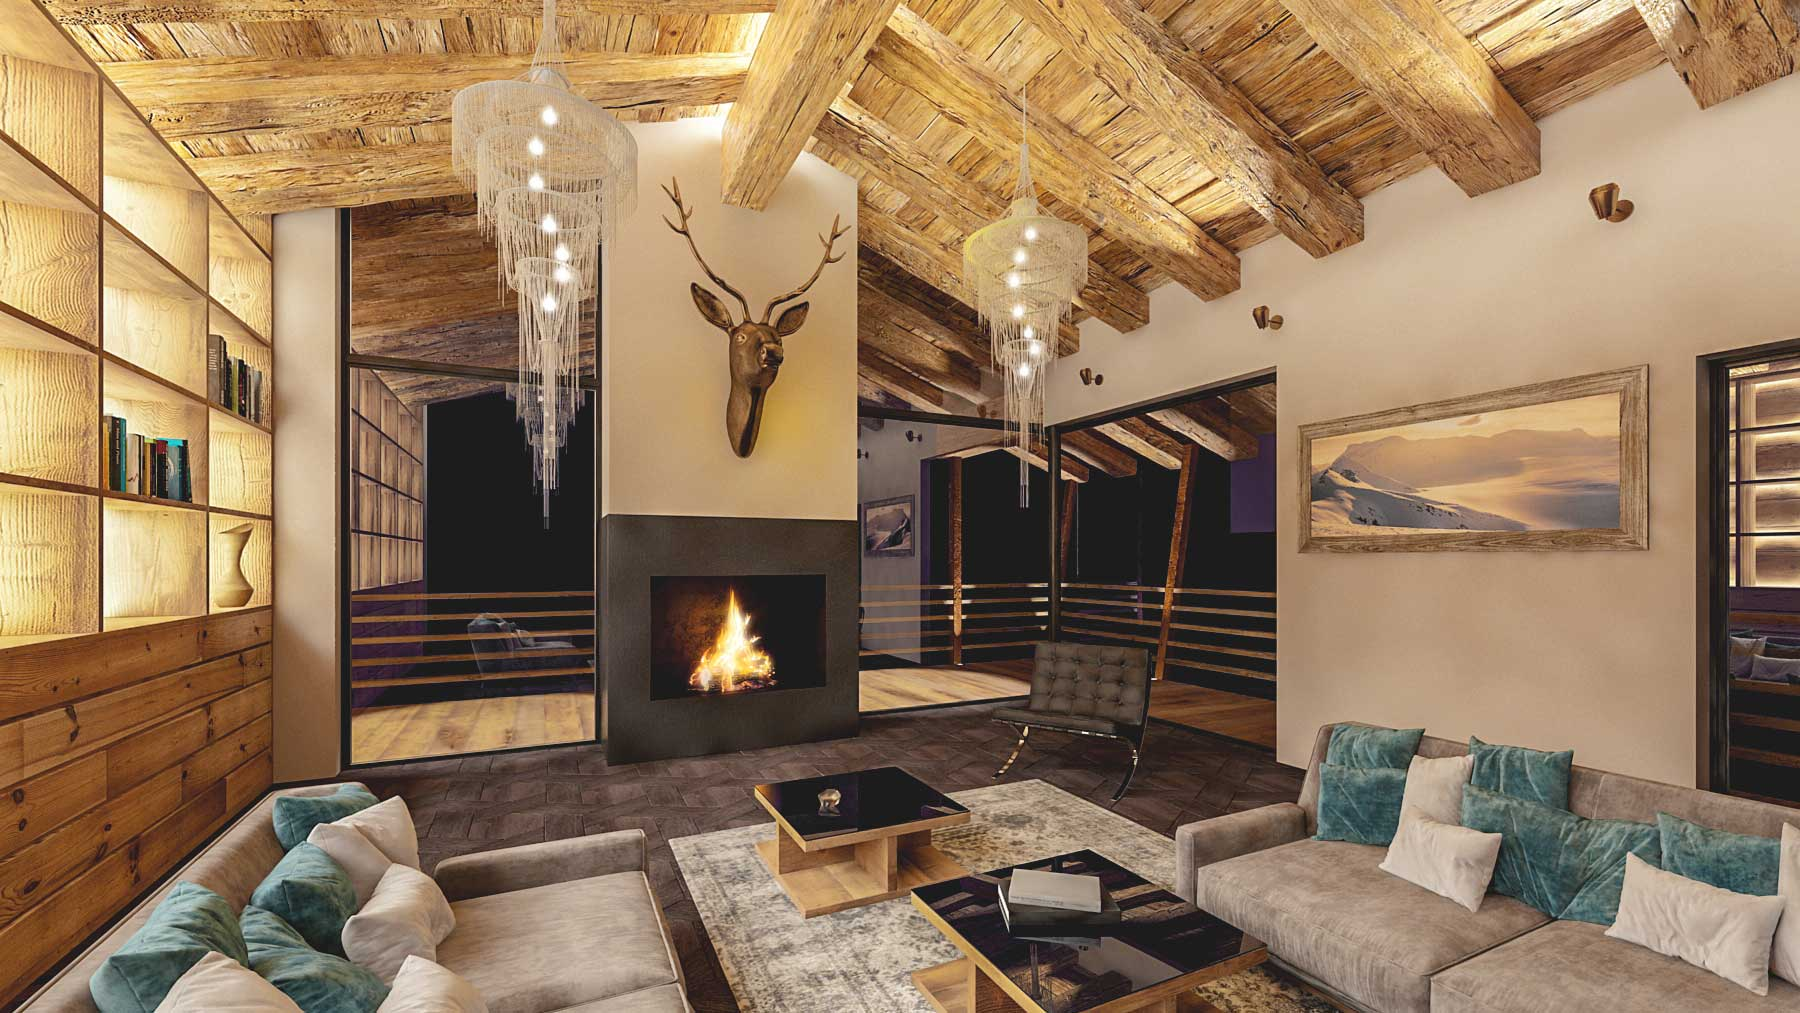 Chalet du Centre Chalet, Switzerland